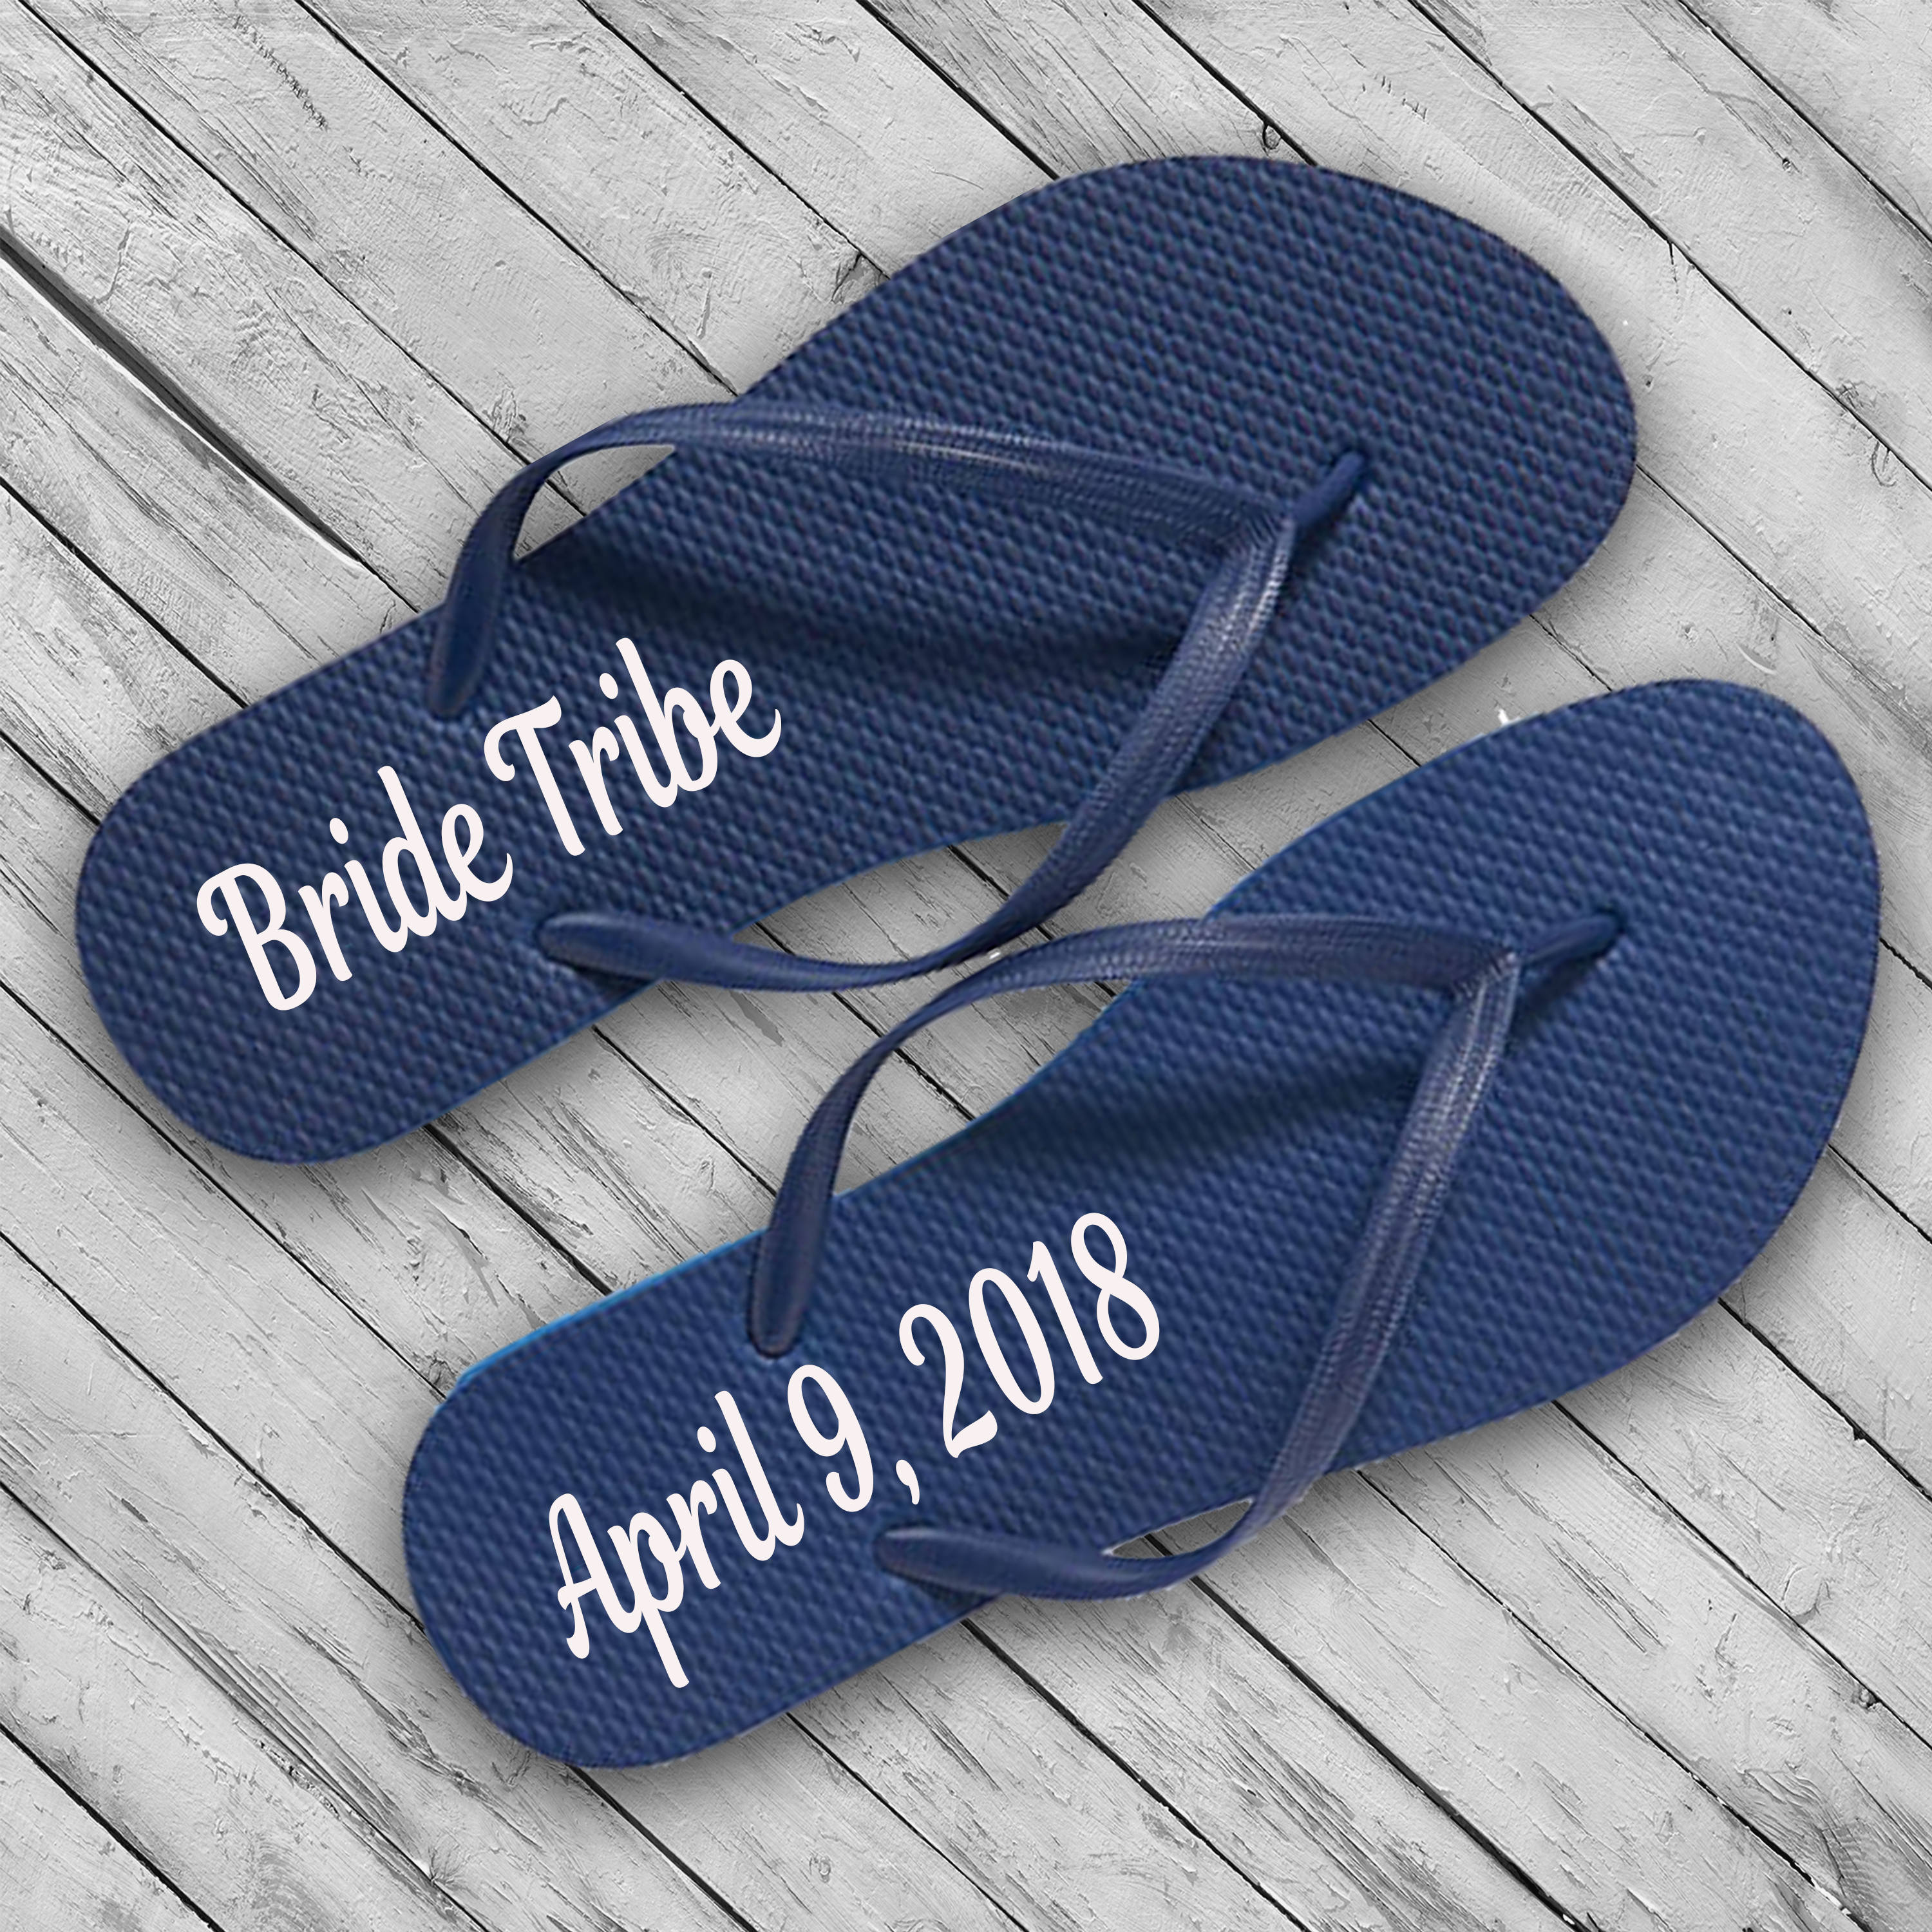 83c4e54a05880f Wedding Flip Flops Decals Only Bride Flip Flops DECAL